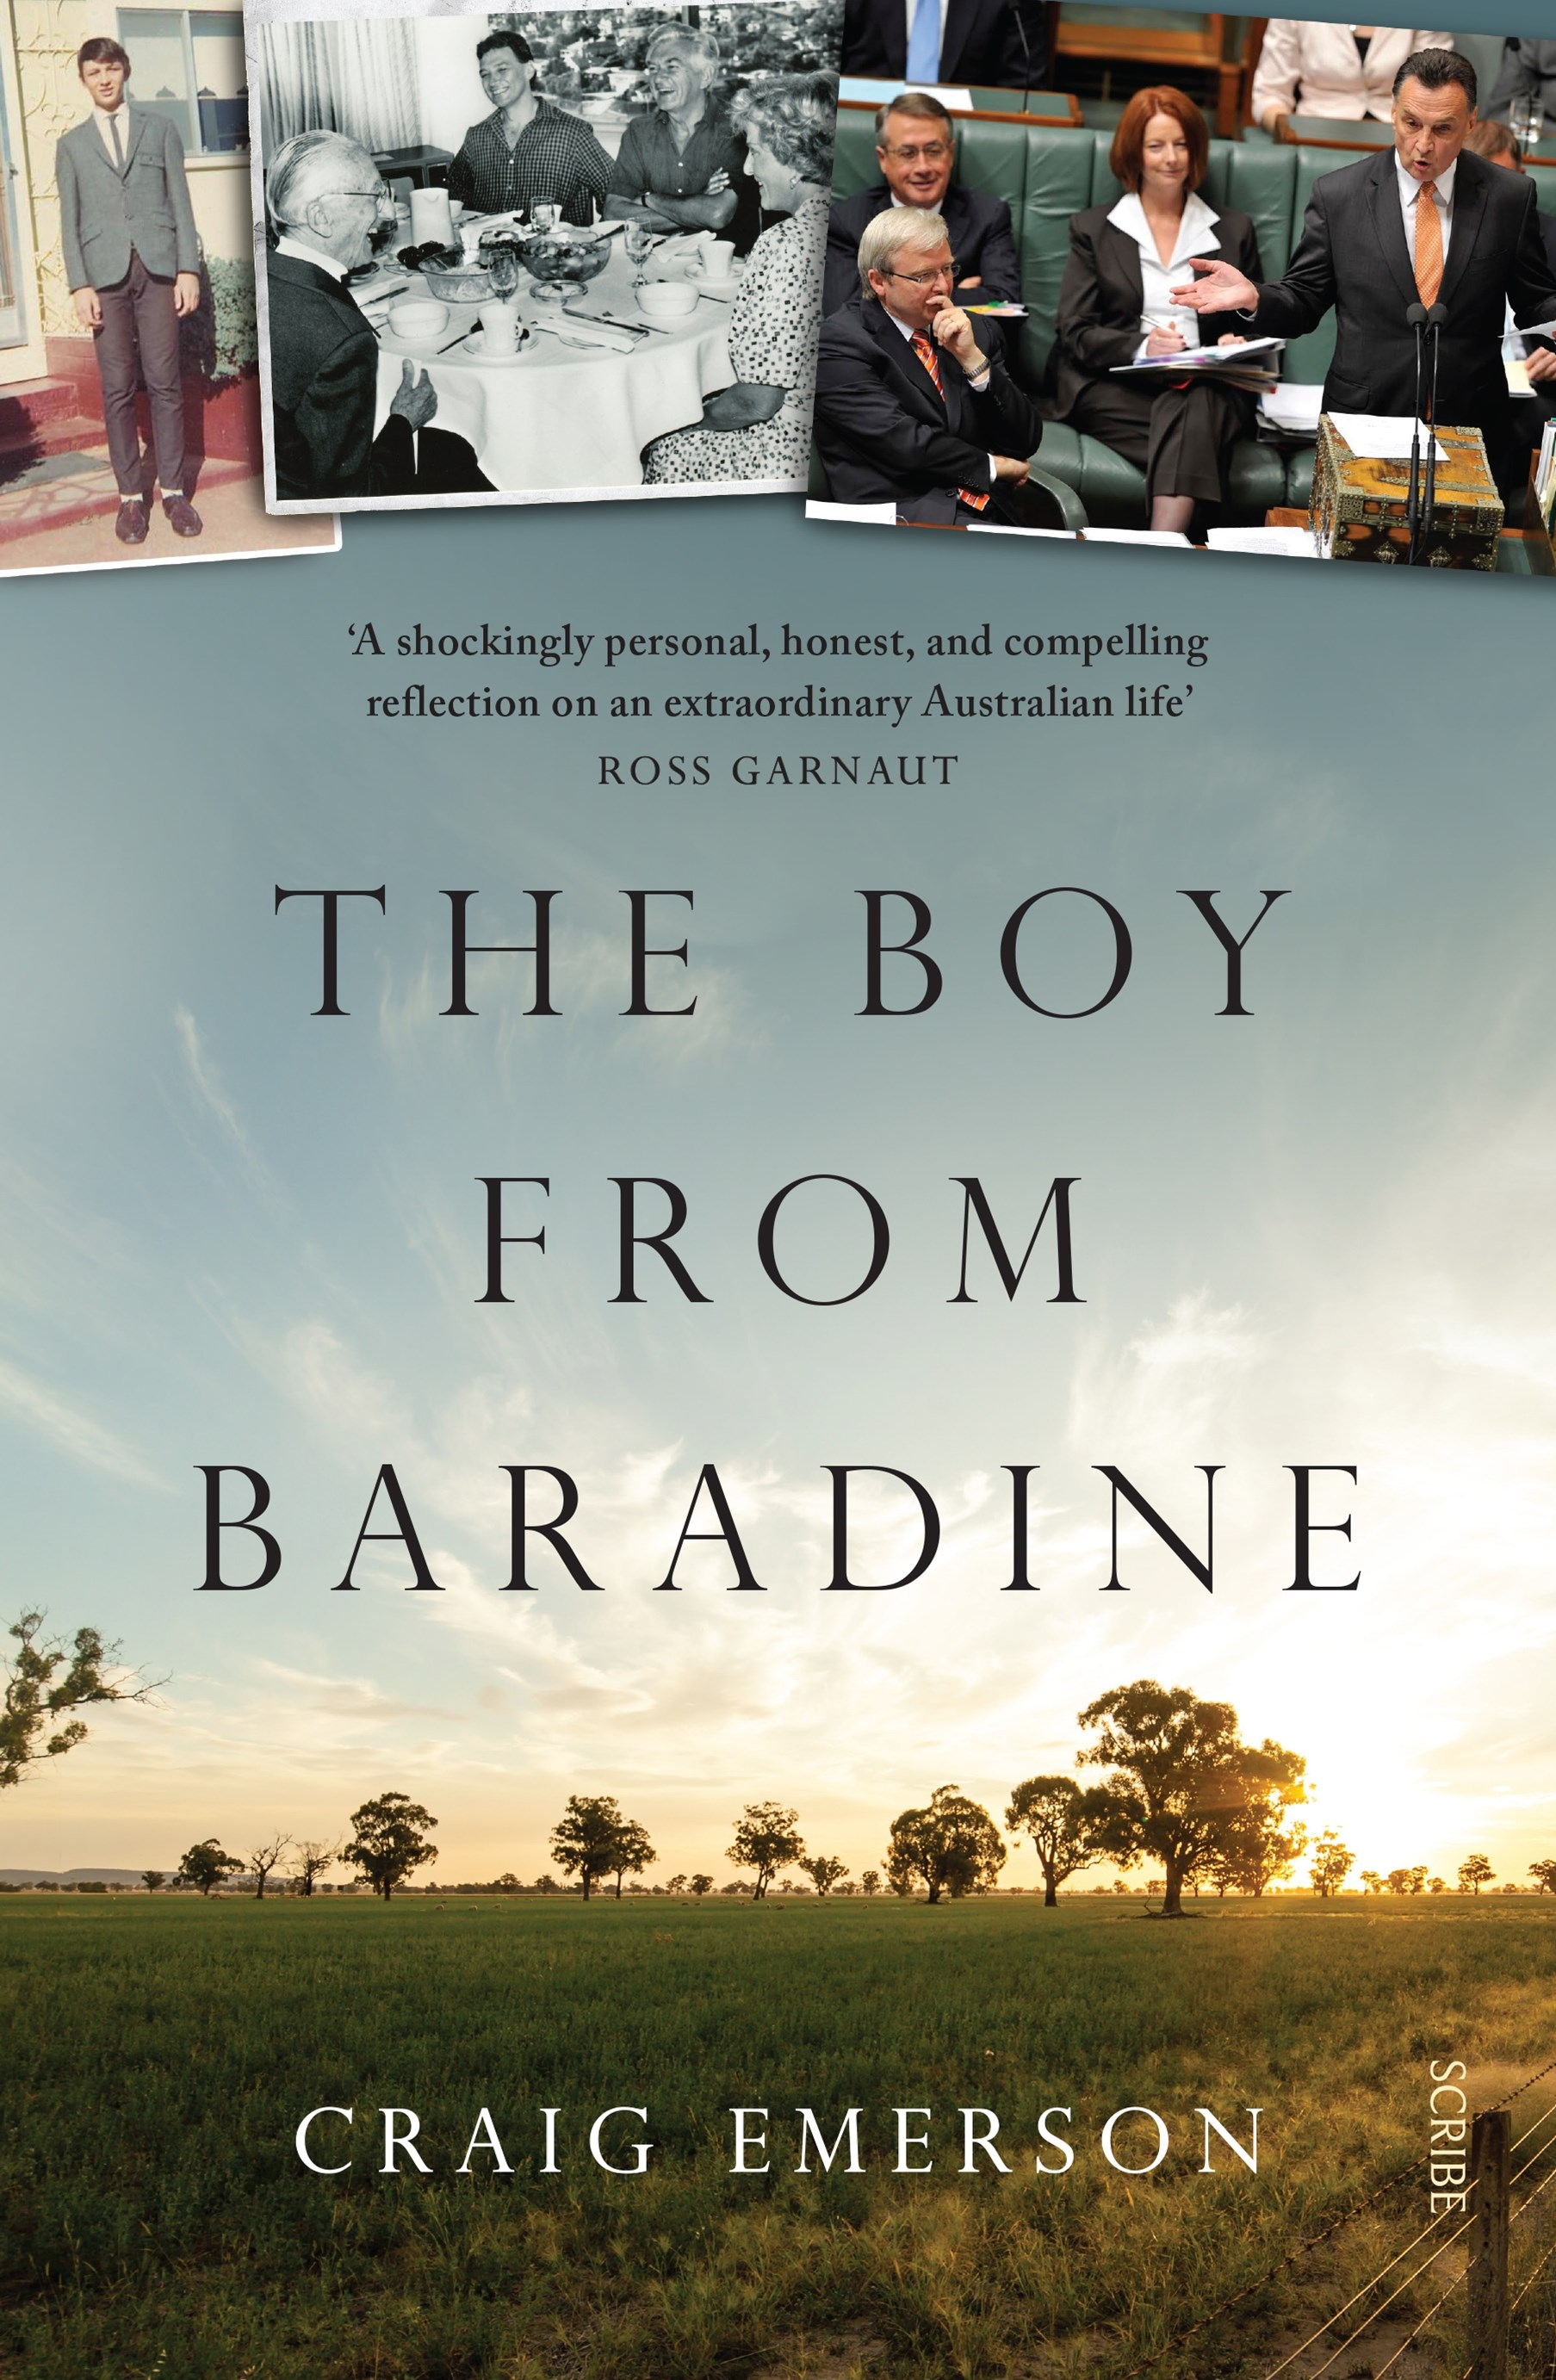 The Boy from Baradine